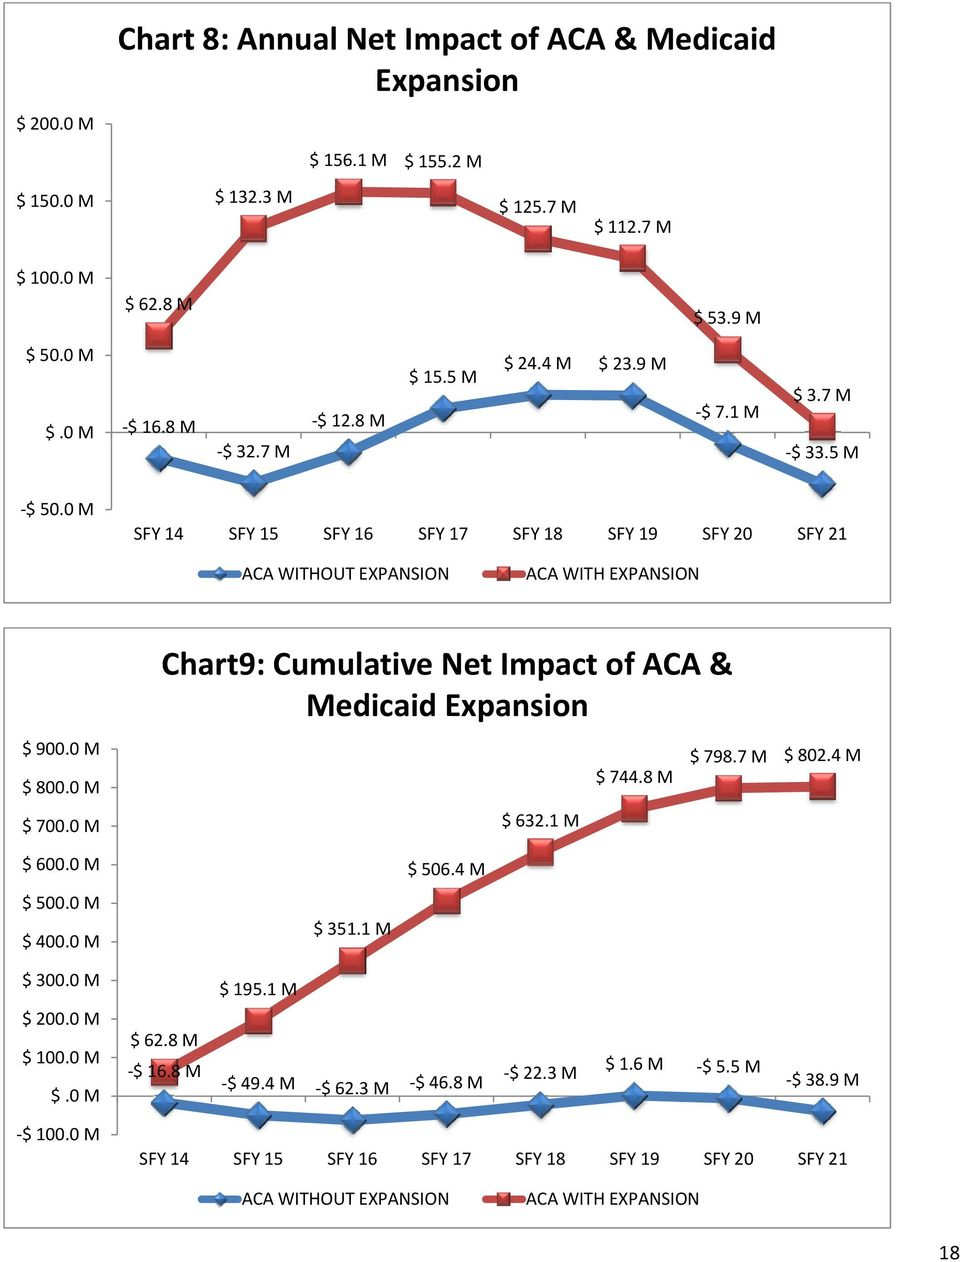 0 M Chart9: Cumulative Net Impact of ACA & Medicaid Expansion $ 632.1 M $ 744.8 M $ 798.7 M $ 802.4 M $ 600.0 M $ 500.0 M $ 400.0 M $ 351.1 M $ 506.4 M $ 300.0 M $ 200.